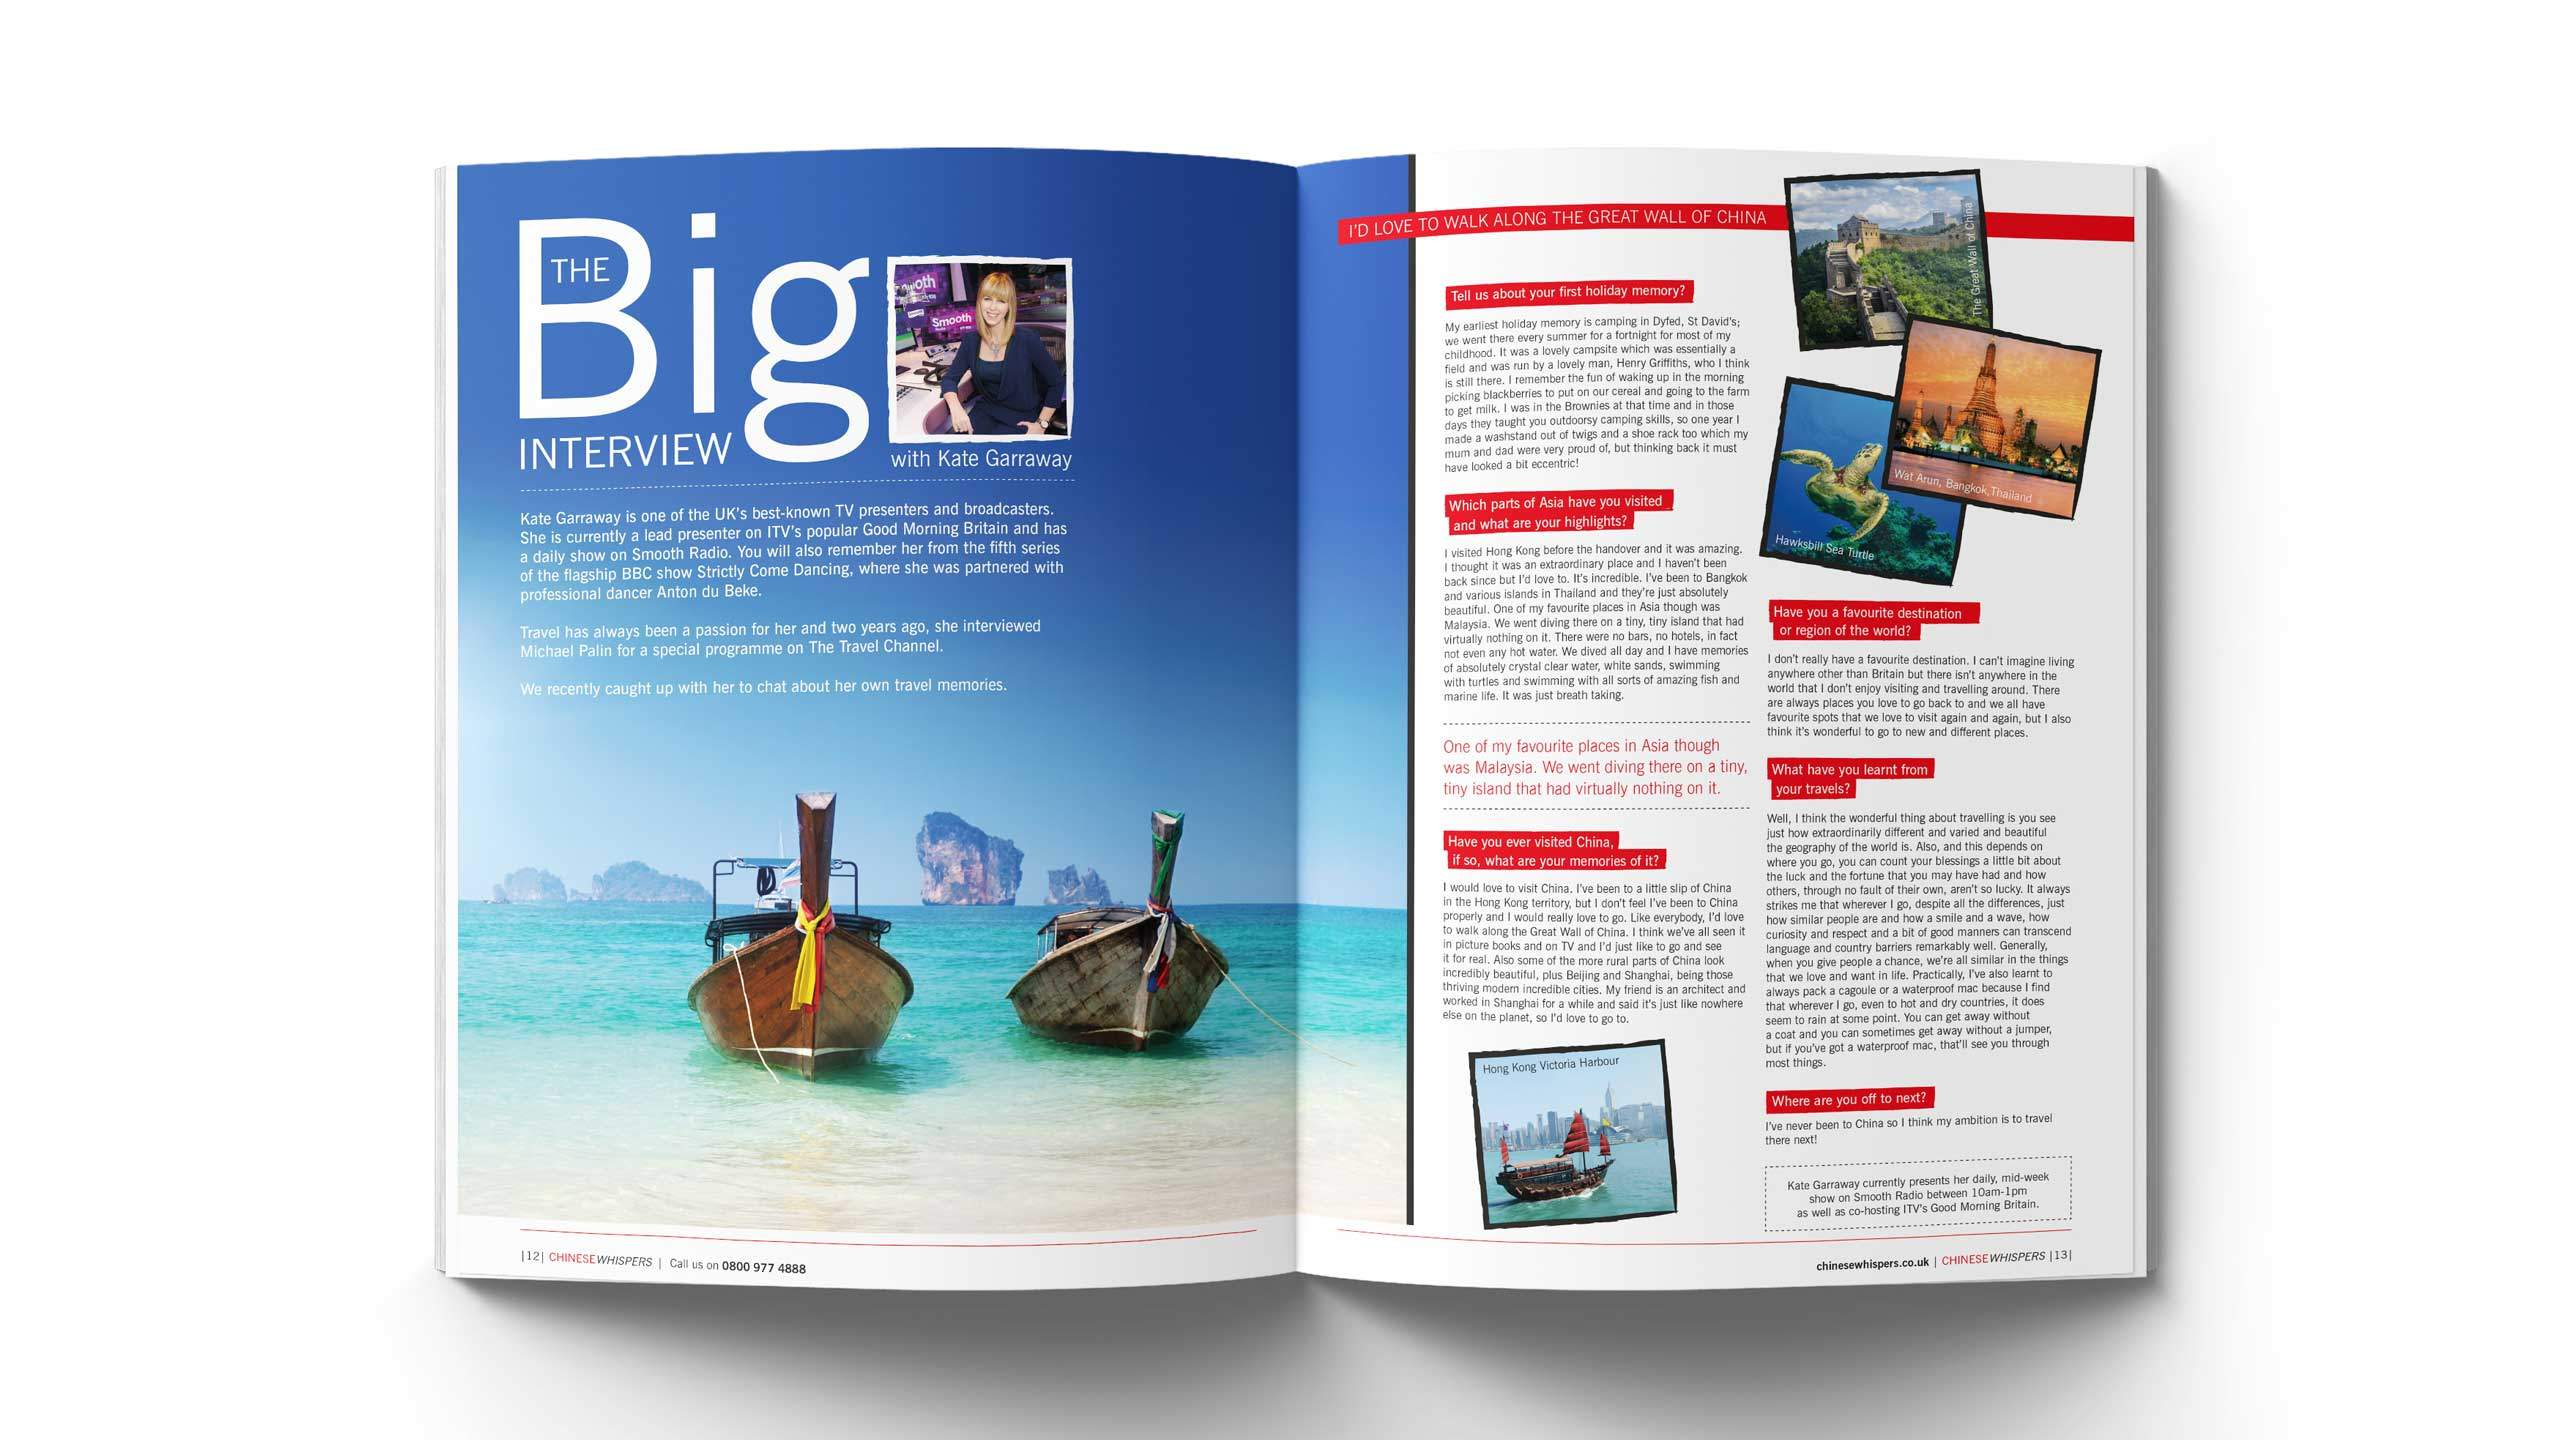 travel company brochure design big interview kate garraway pages wendy wu